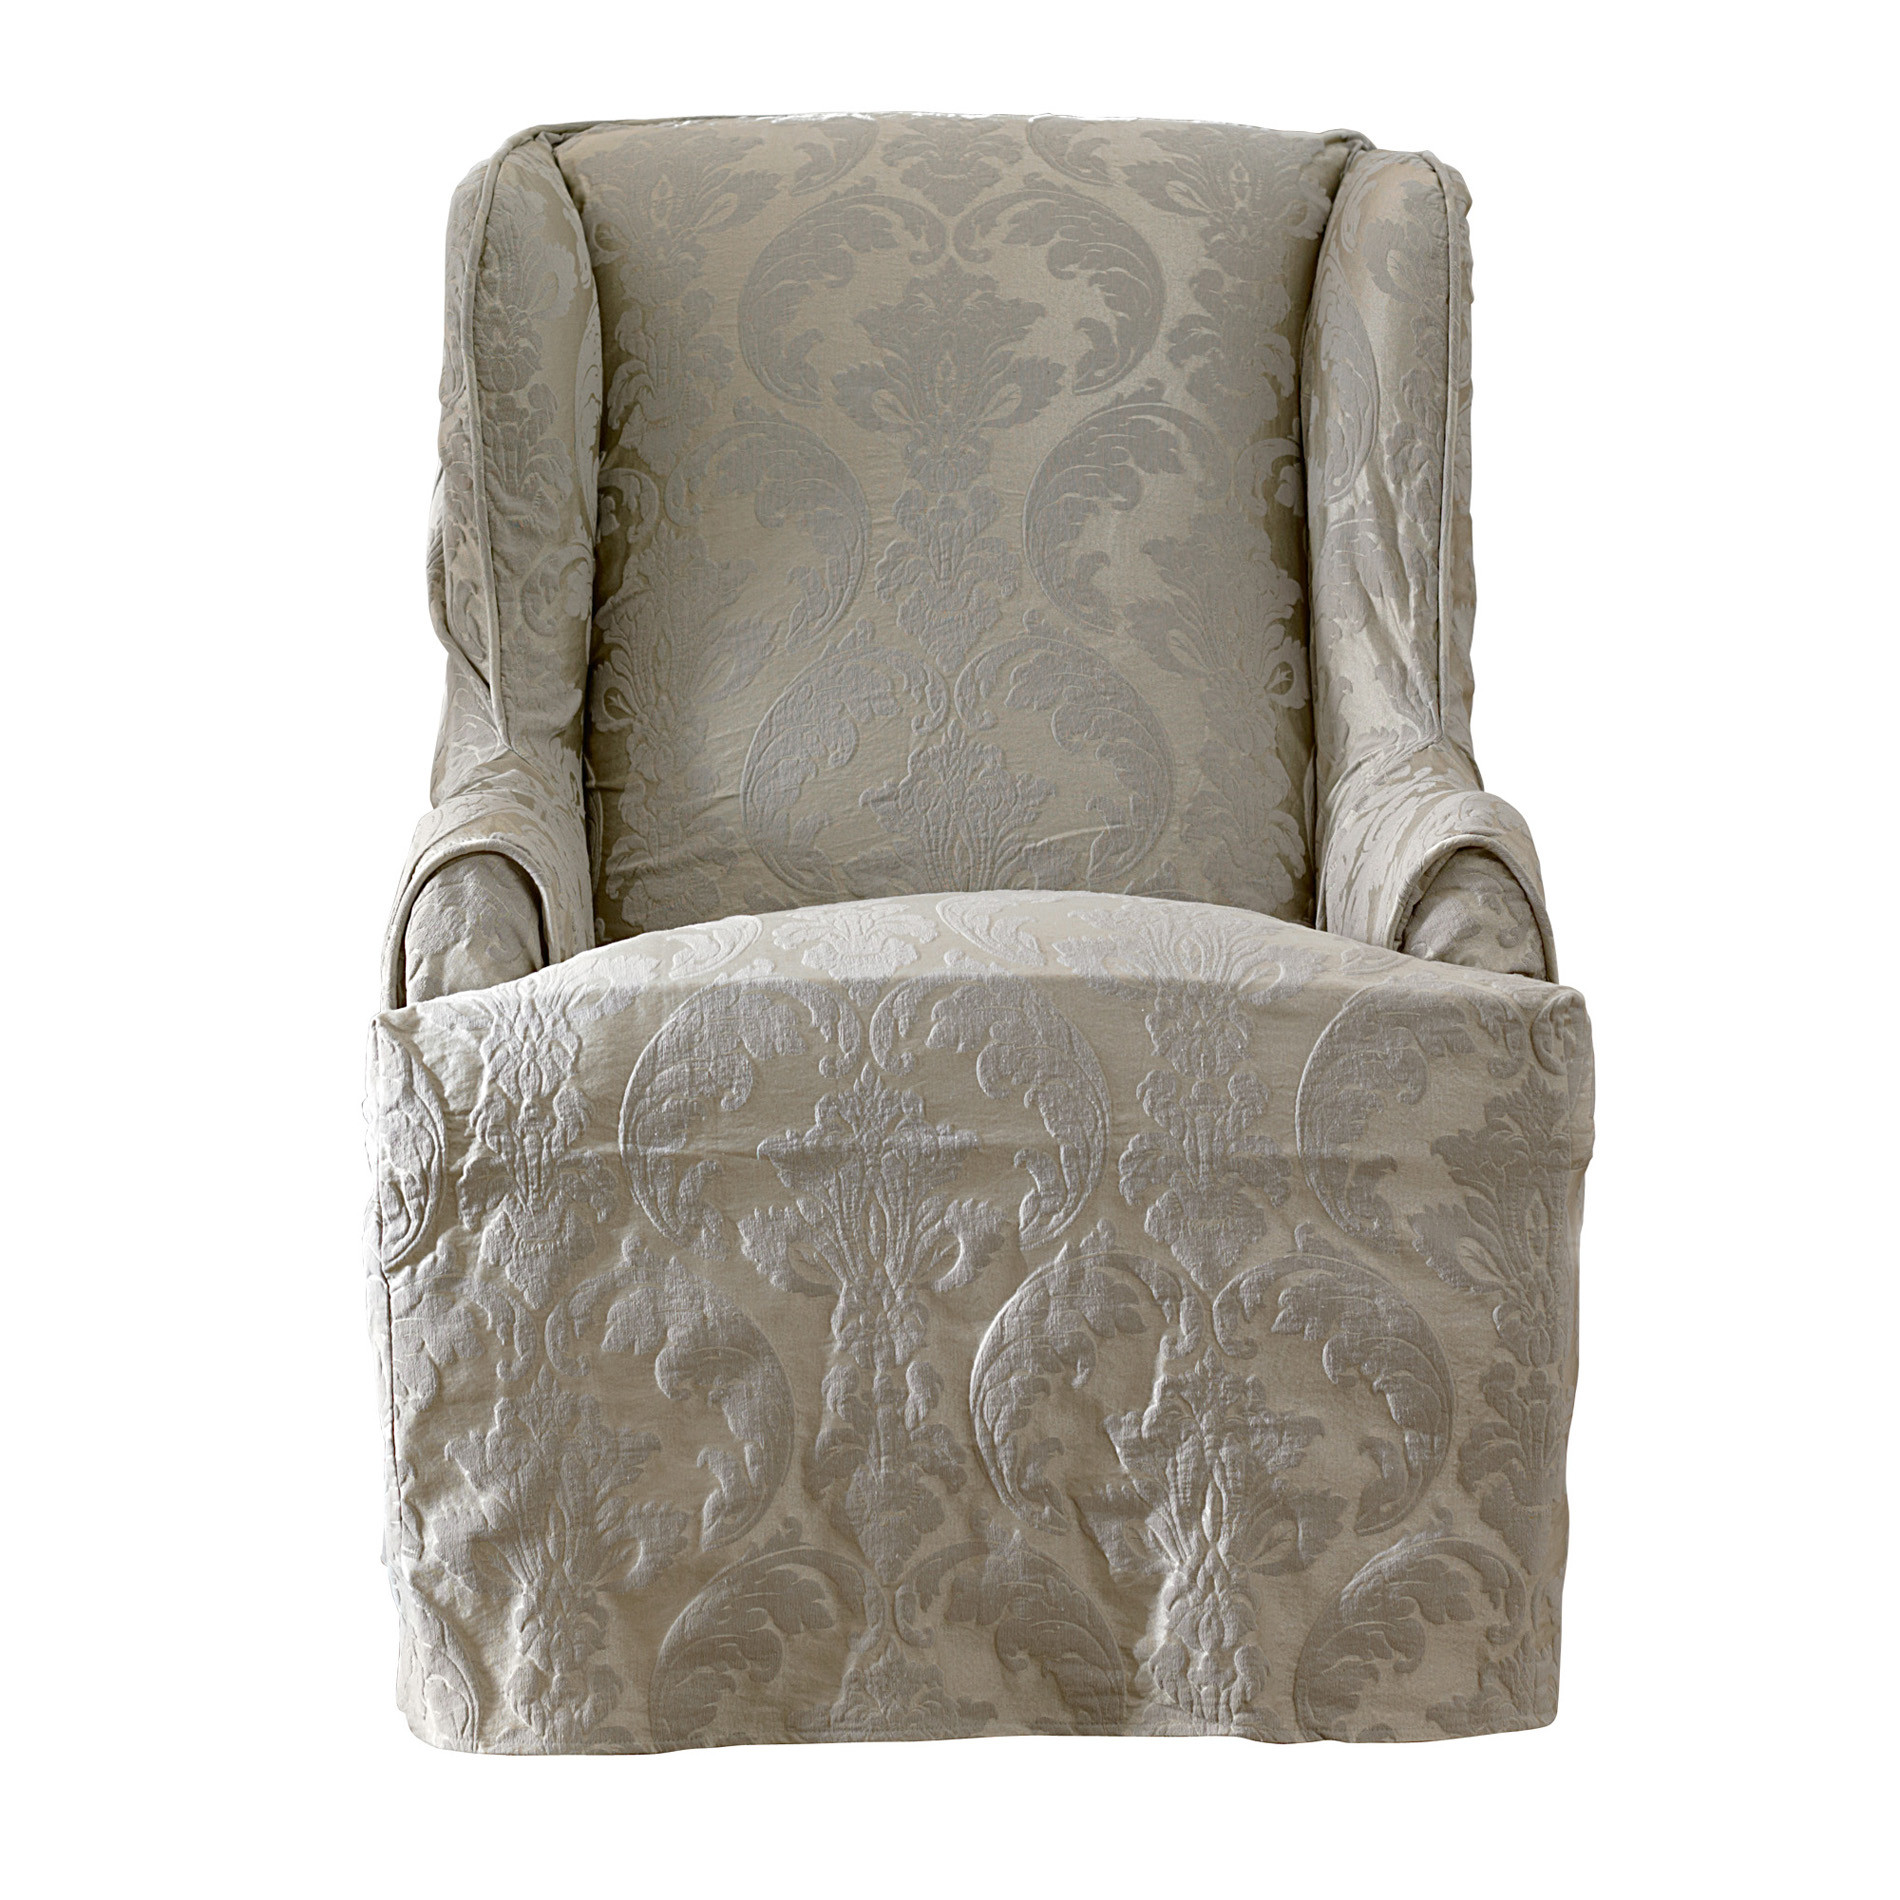 Surefit Slipcovers Loveseat | Oversized Chair Slipcover | Walmart Chair Covers